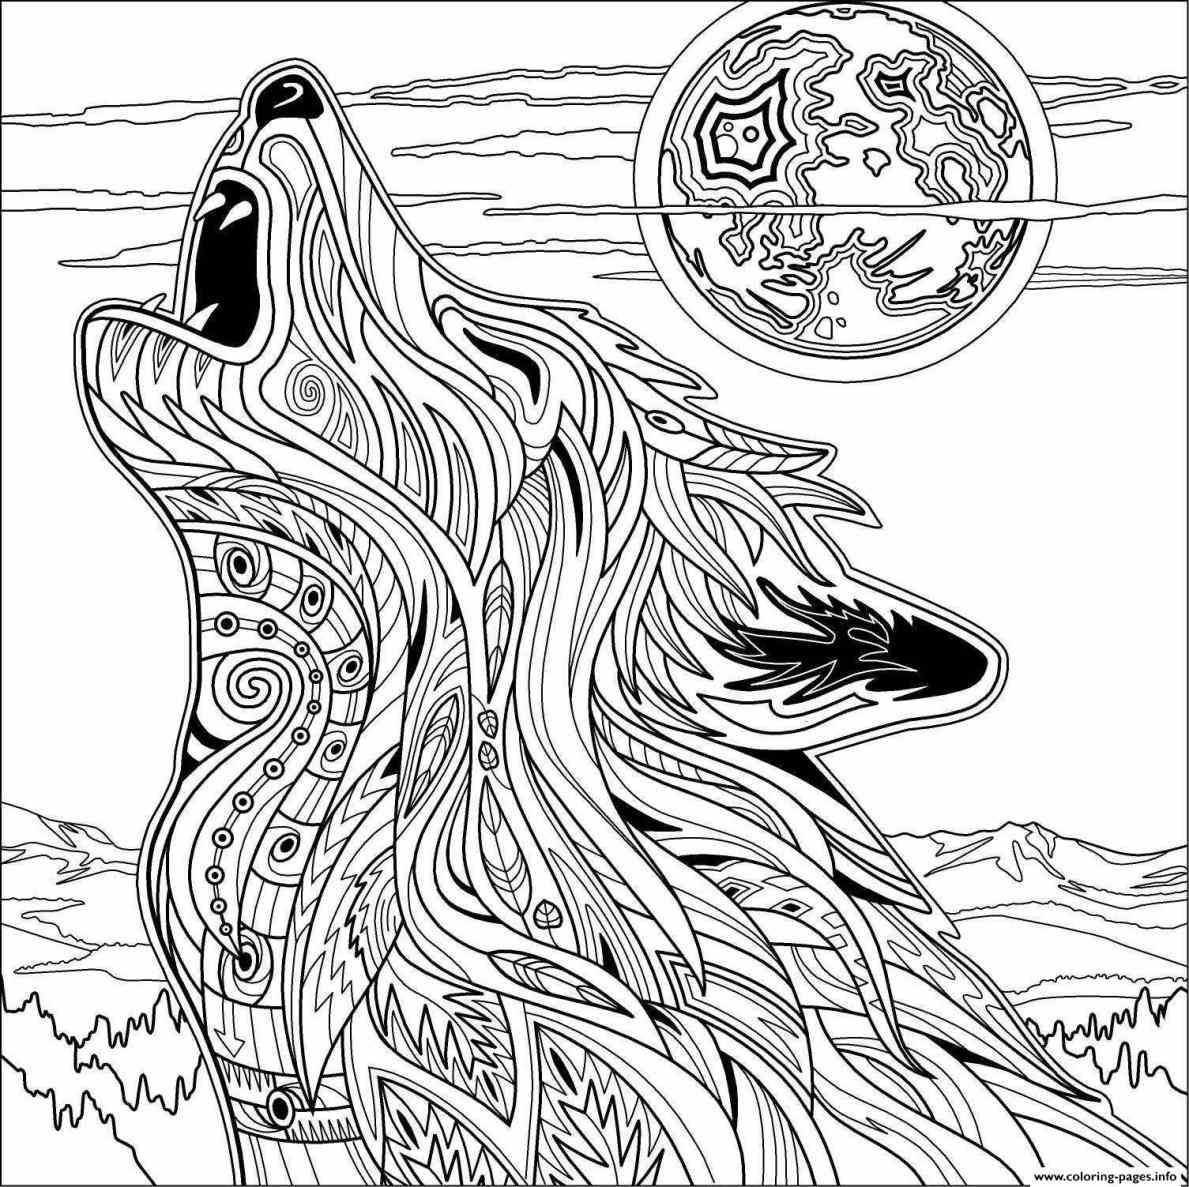 Detailed Wolf Coloring Pages at GetColorings.com   Free ...